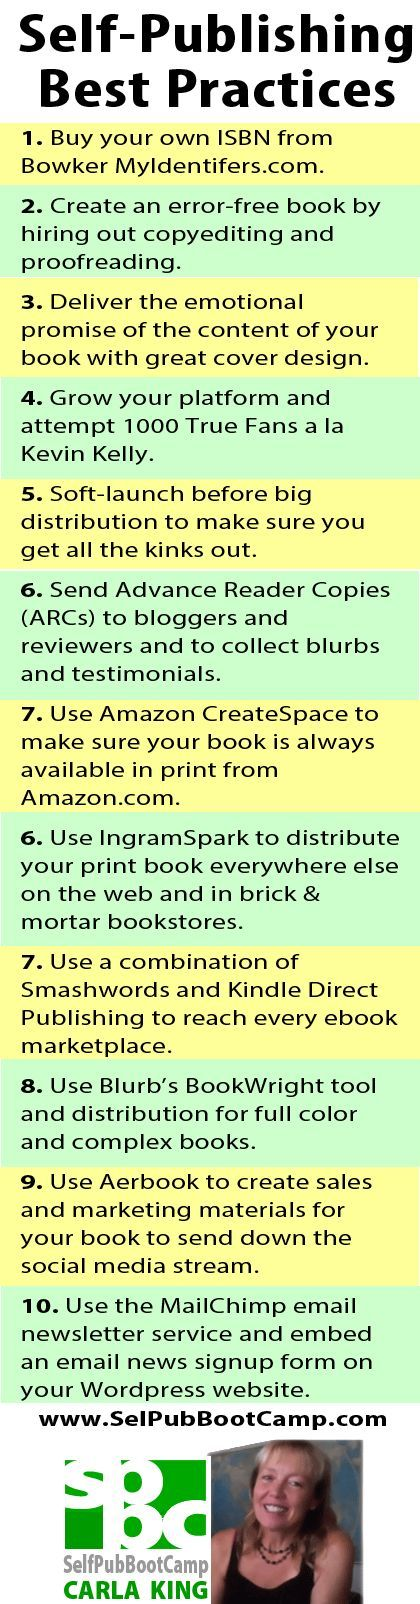 Best practices for authors who plan to self-publish. http://www.rebeccaatthewell.org/store/products/priests-of-righteousness-4-cd-set/